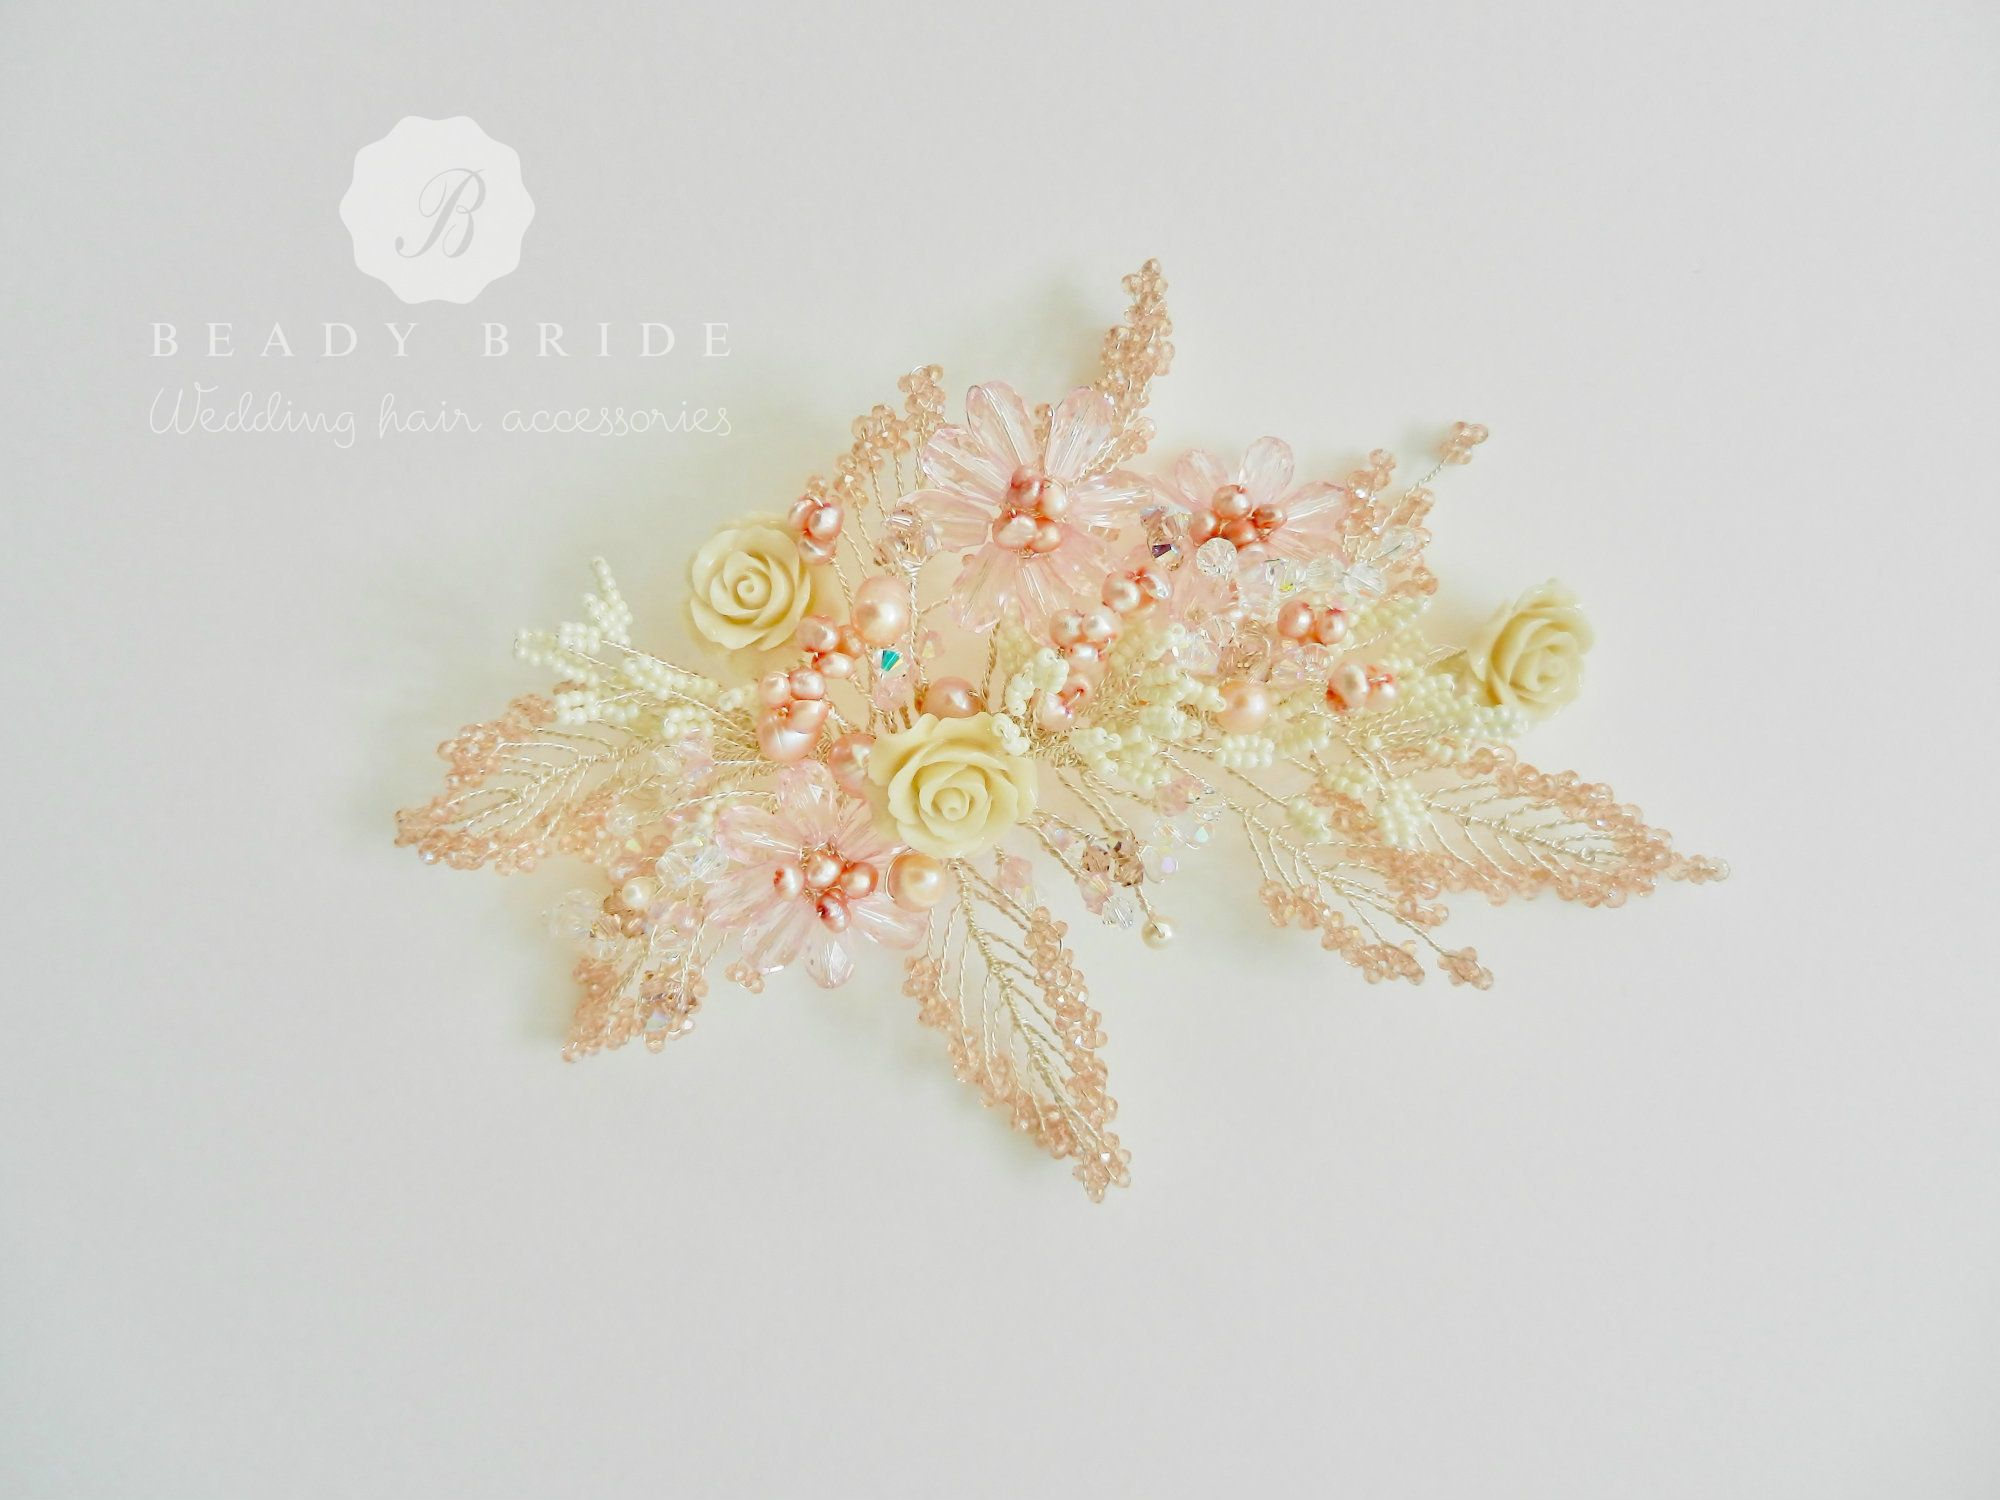 Bespoke-Floral-occasion&wedding-hair-accessory-UK